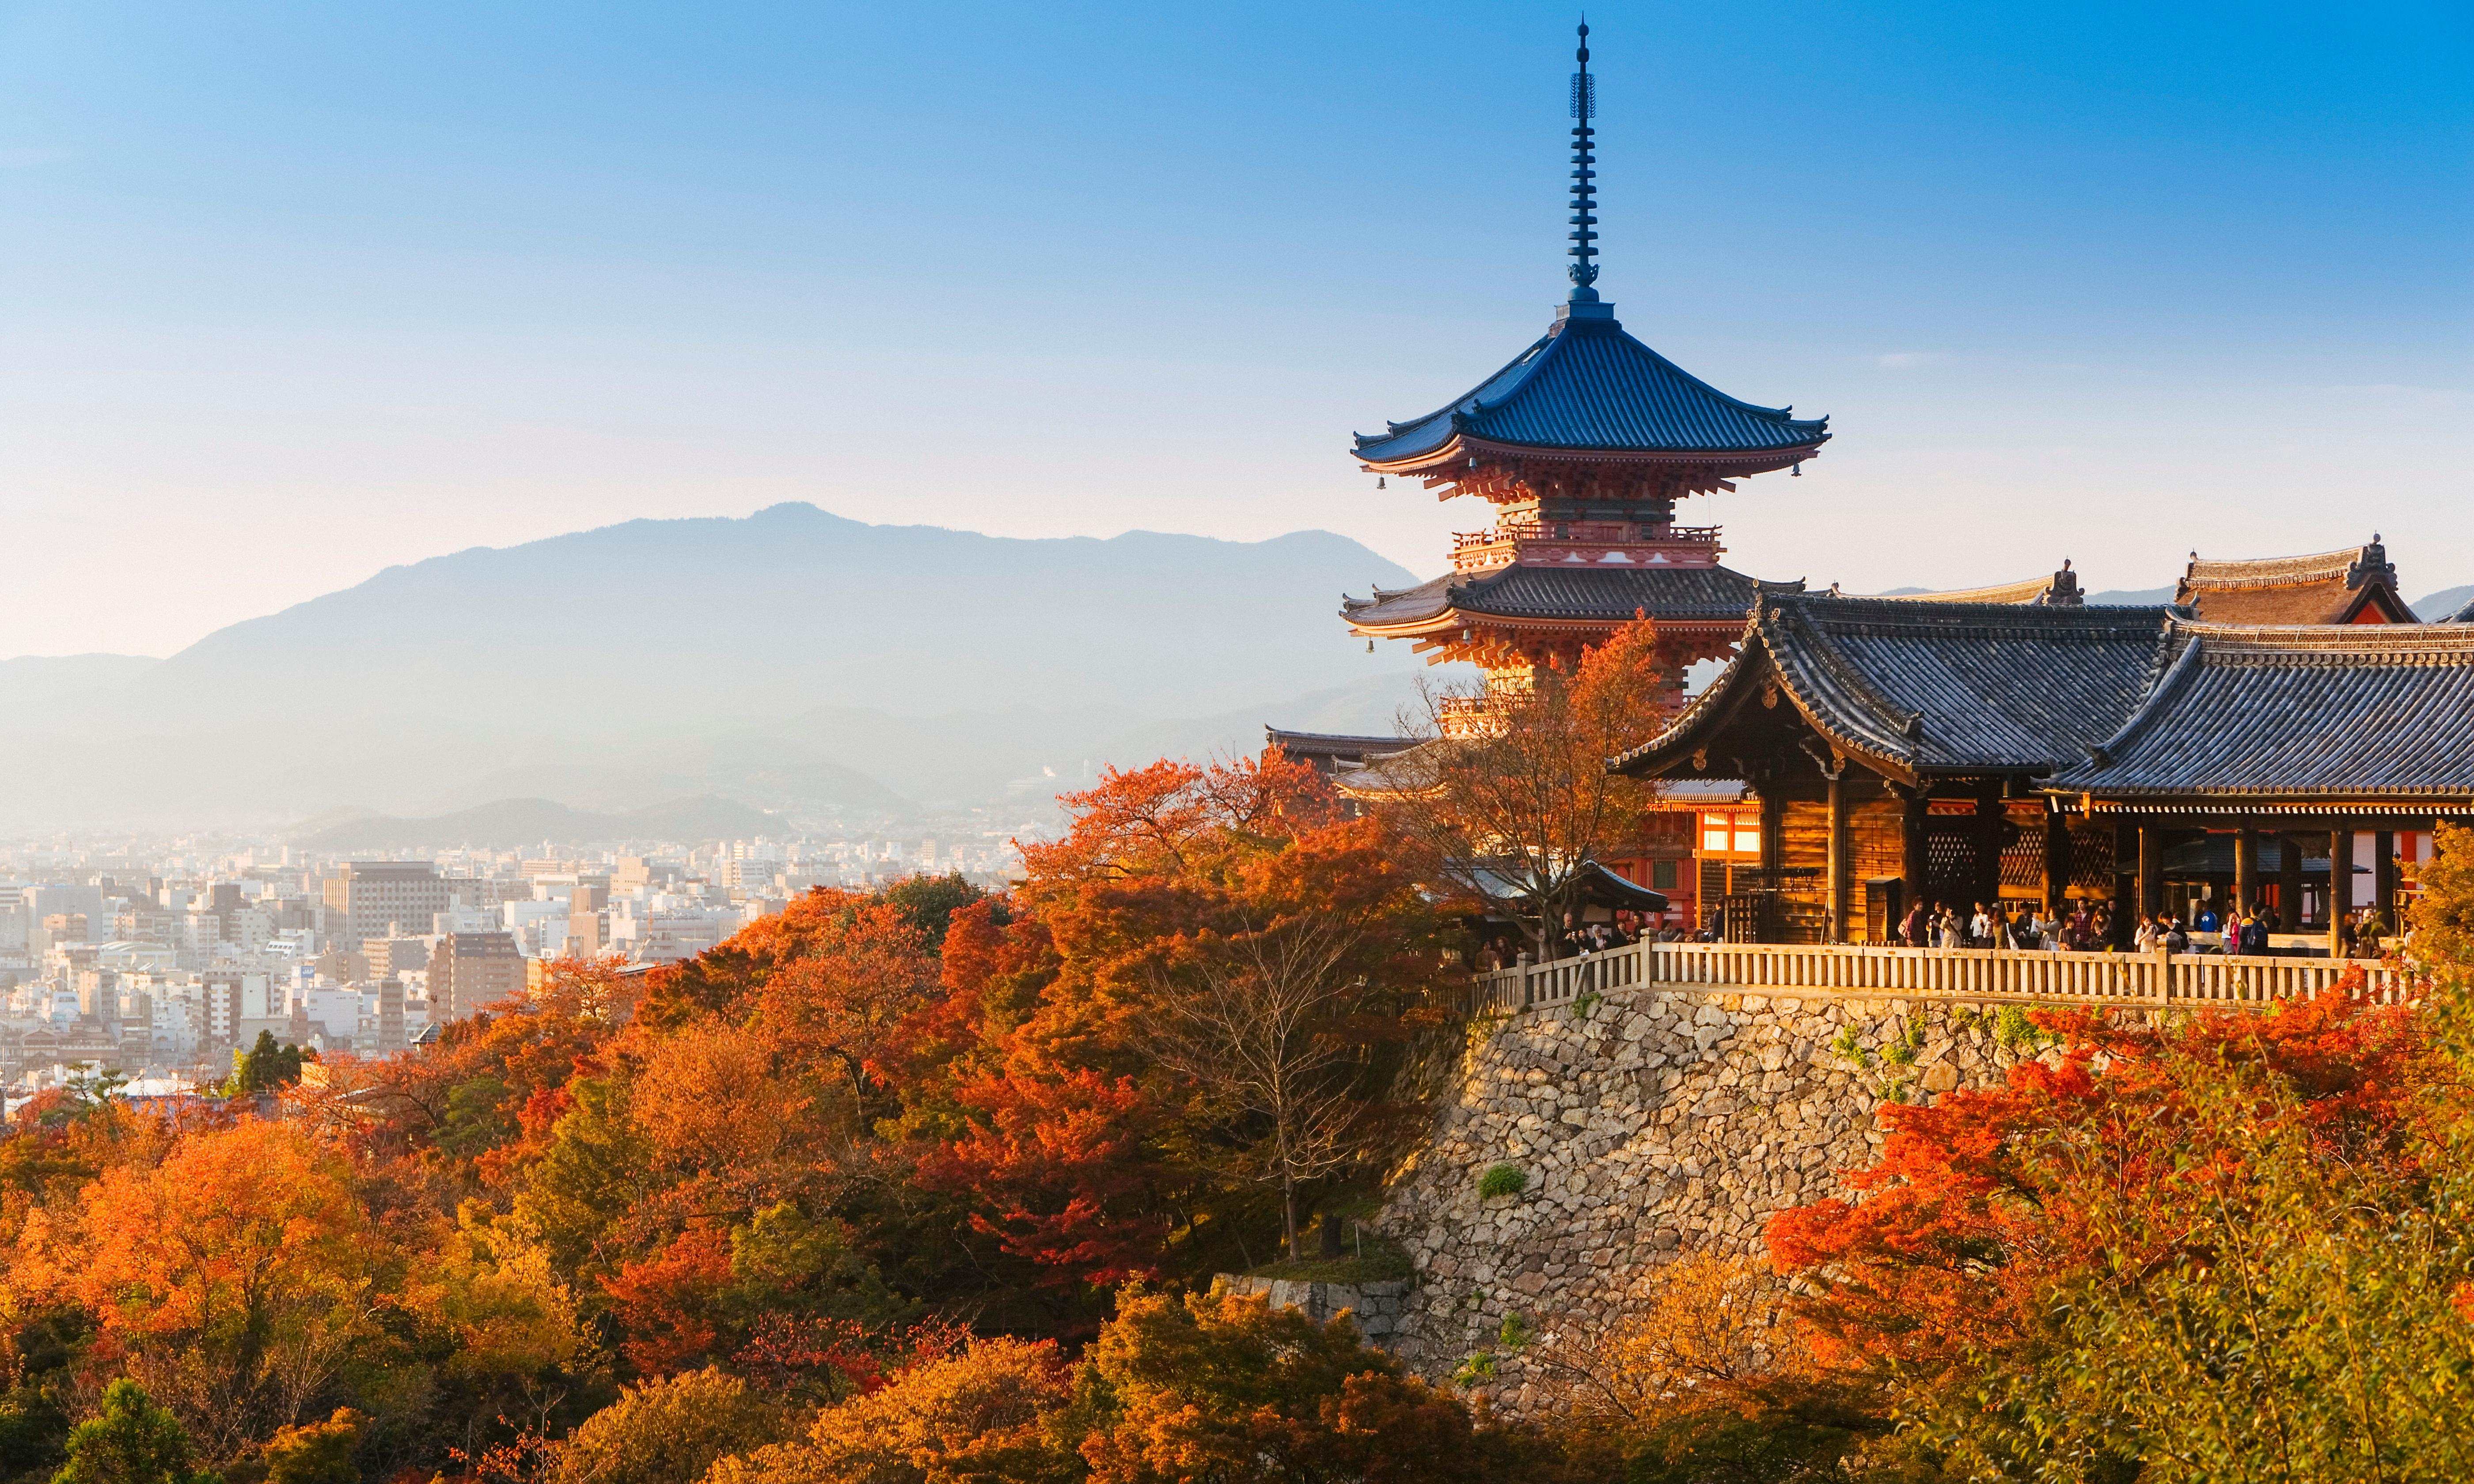 Share cultural highlights of Japan for the chance to win a £200 hotel voucher